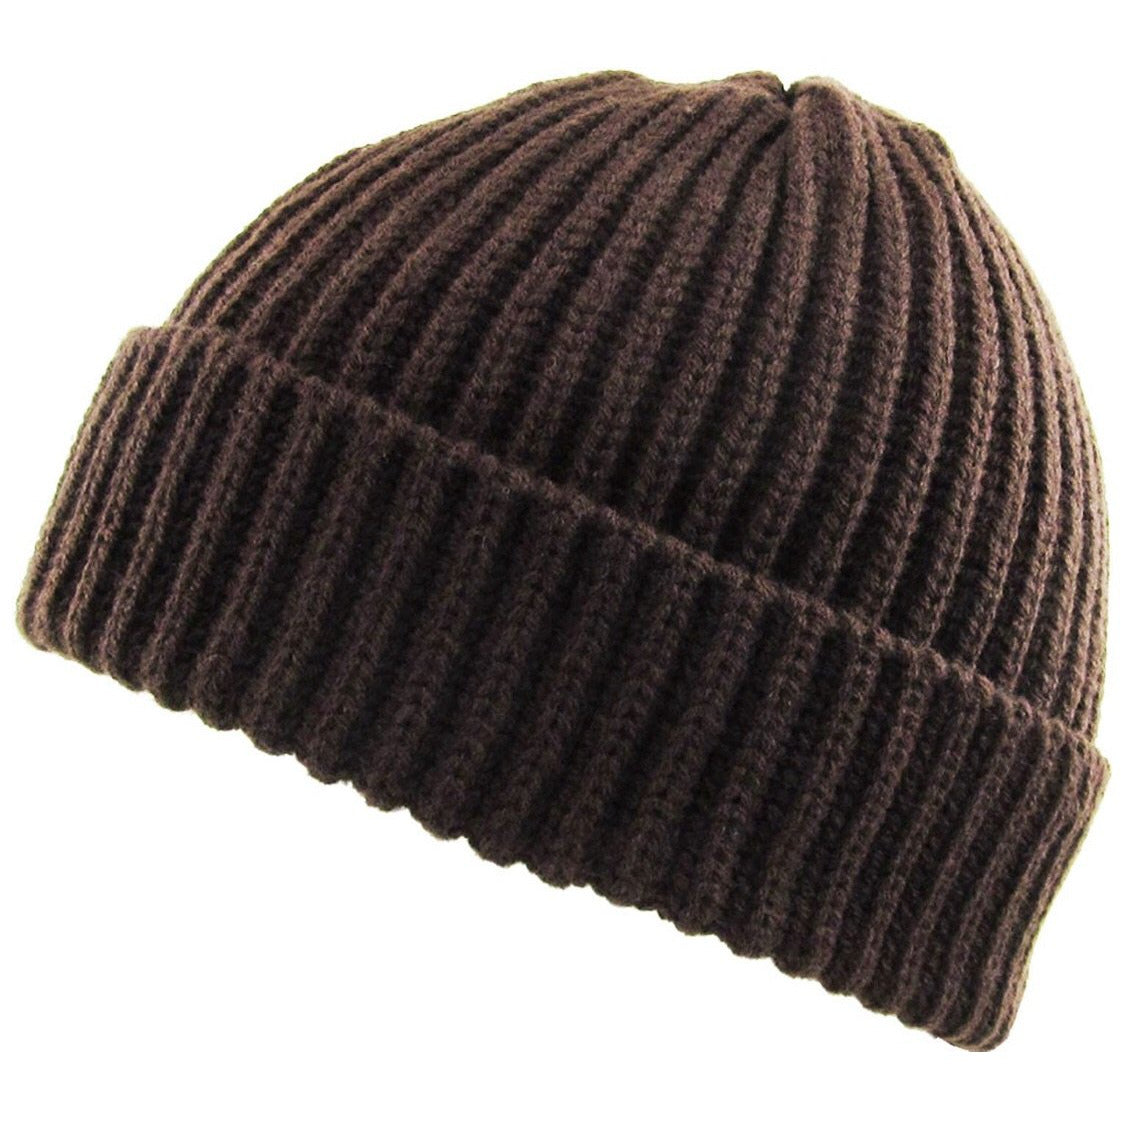 STEM Beanie- BROWN - STEM Clothing Group